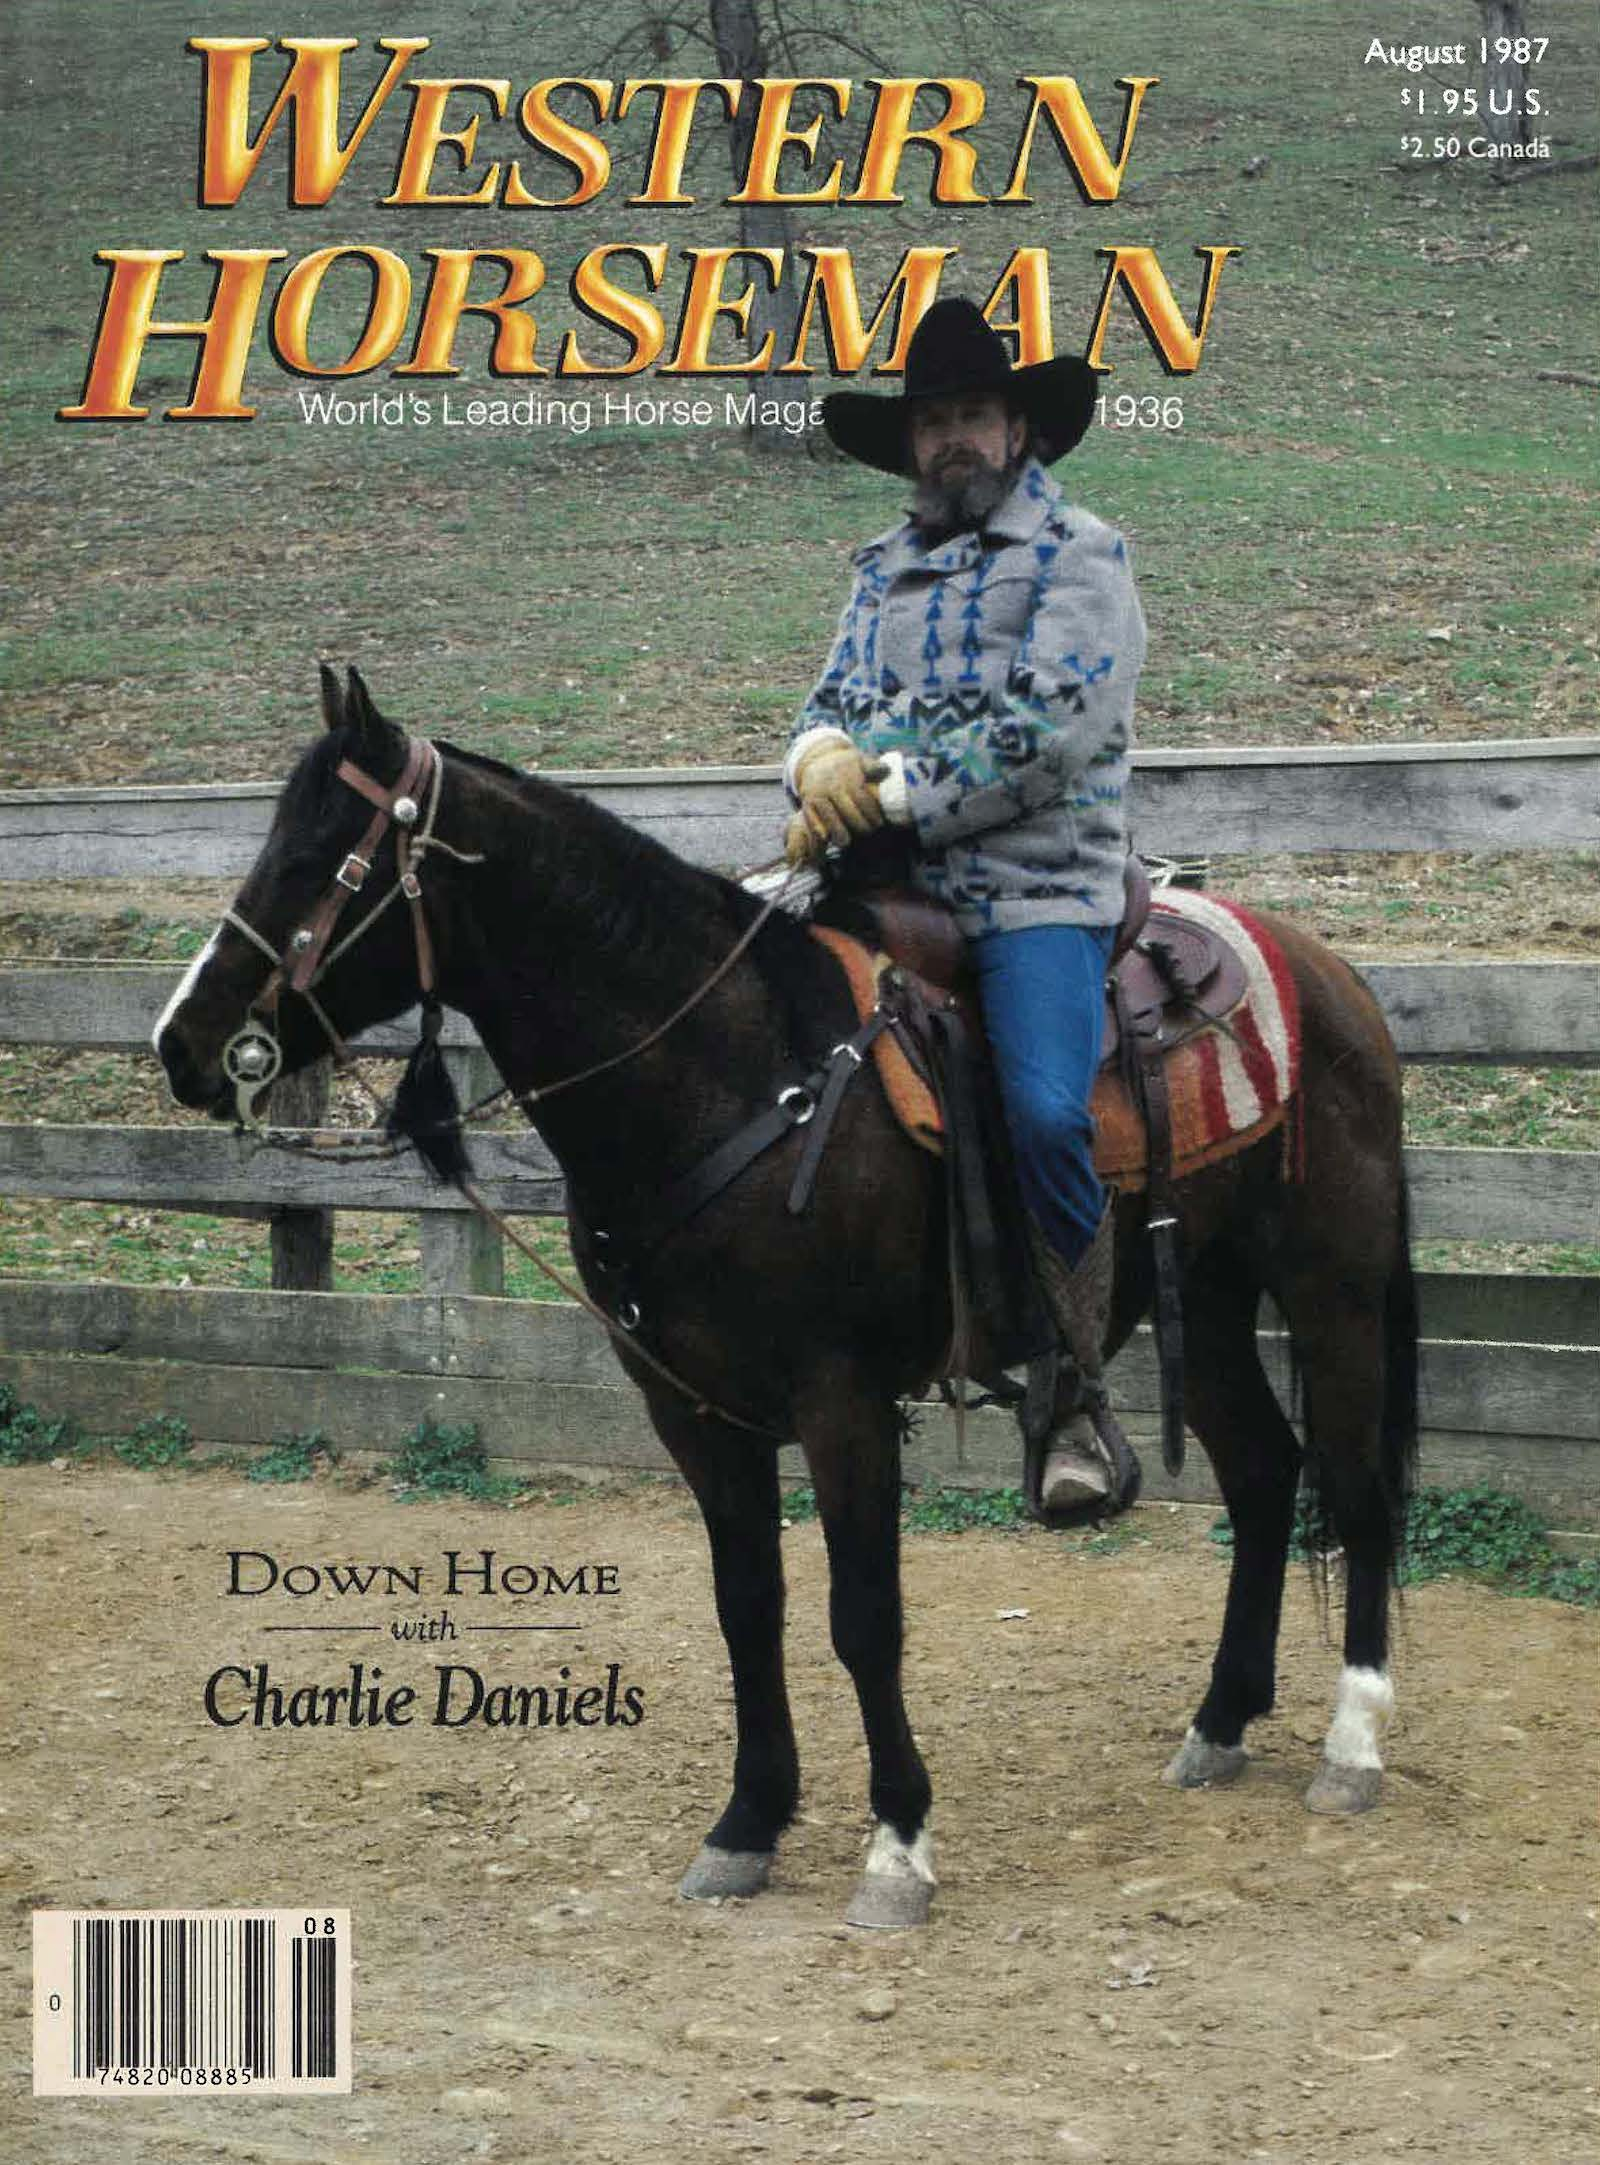 Charlie Daniels on the cover of Western Horseman magazine August 1987